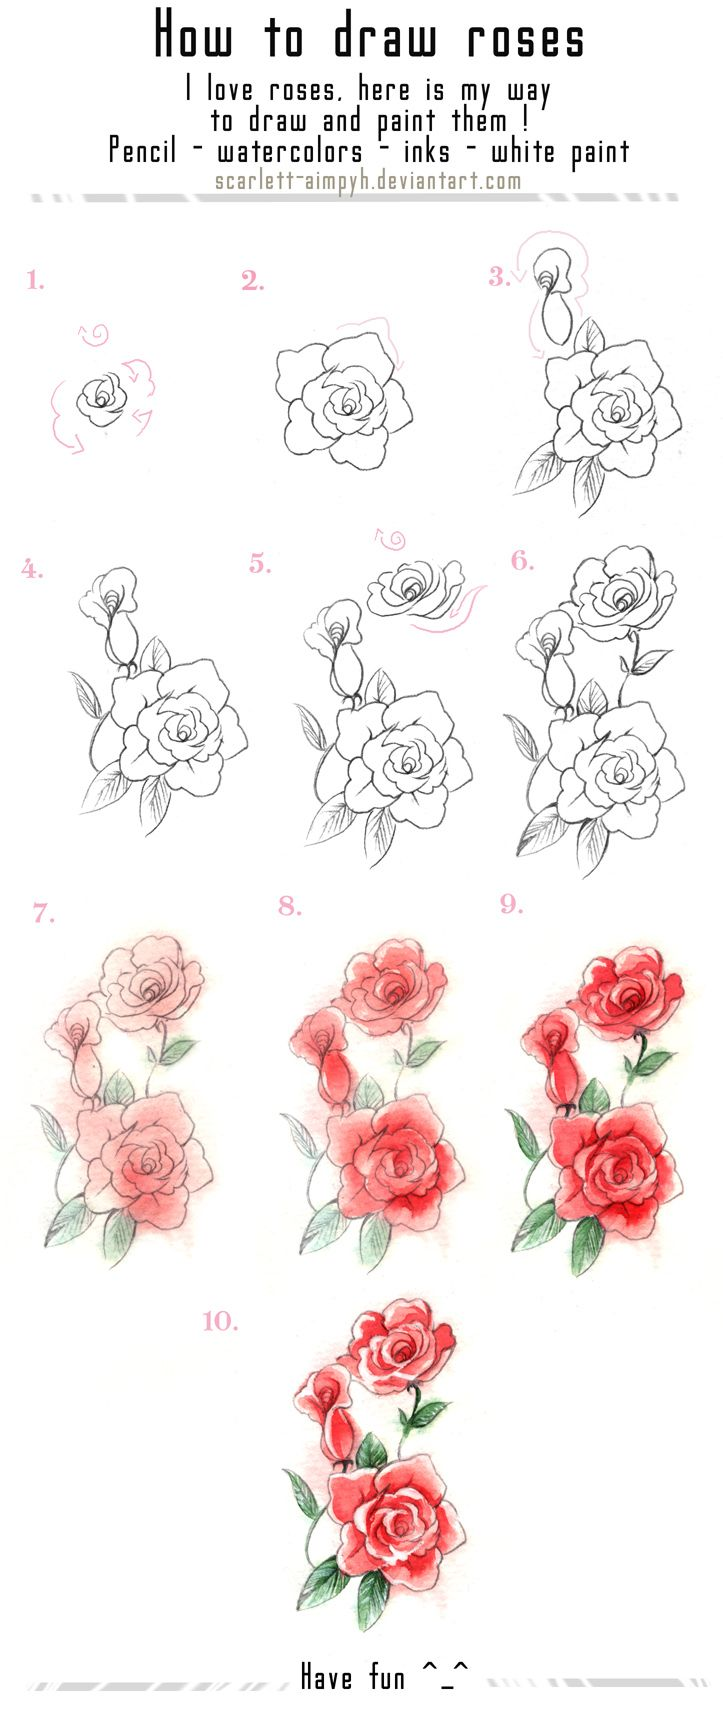 draw and paint roses by scarlettaimpyhd on deviantart